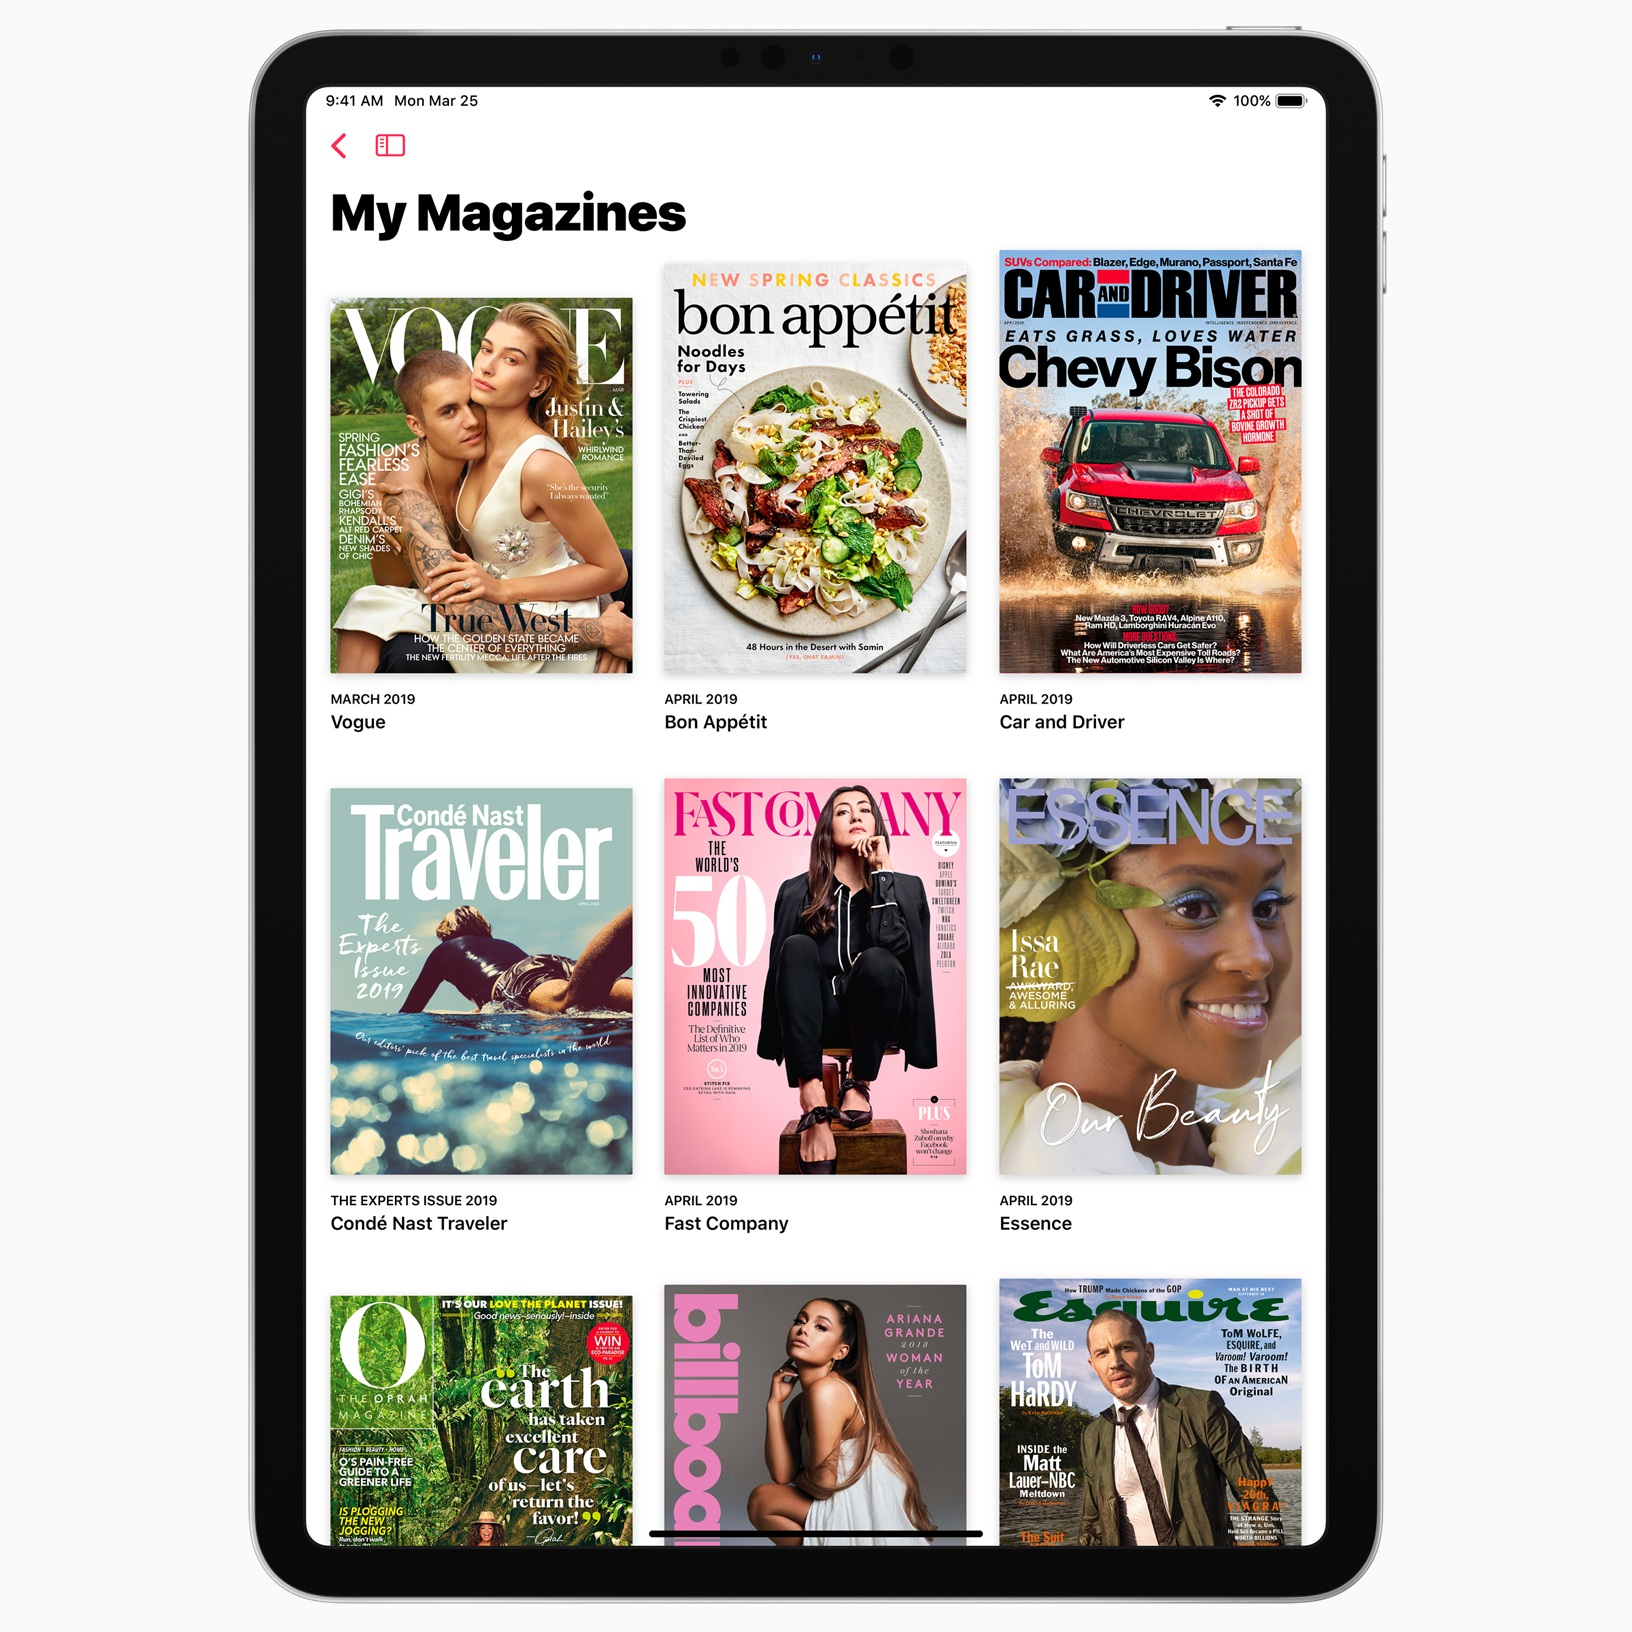 Apple-News-Plus-subscription-launched-pricing-Texture-app.jpg